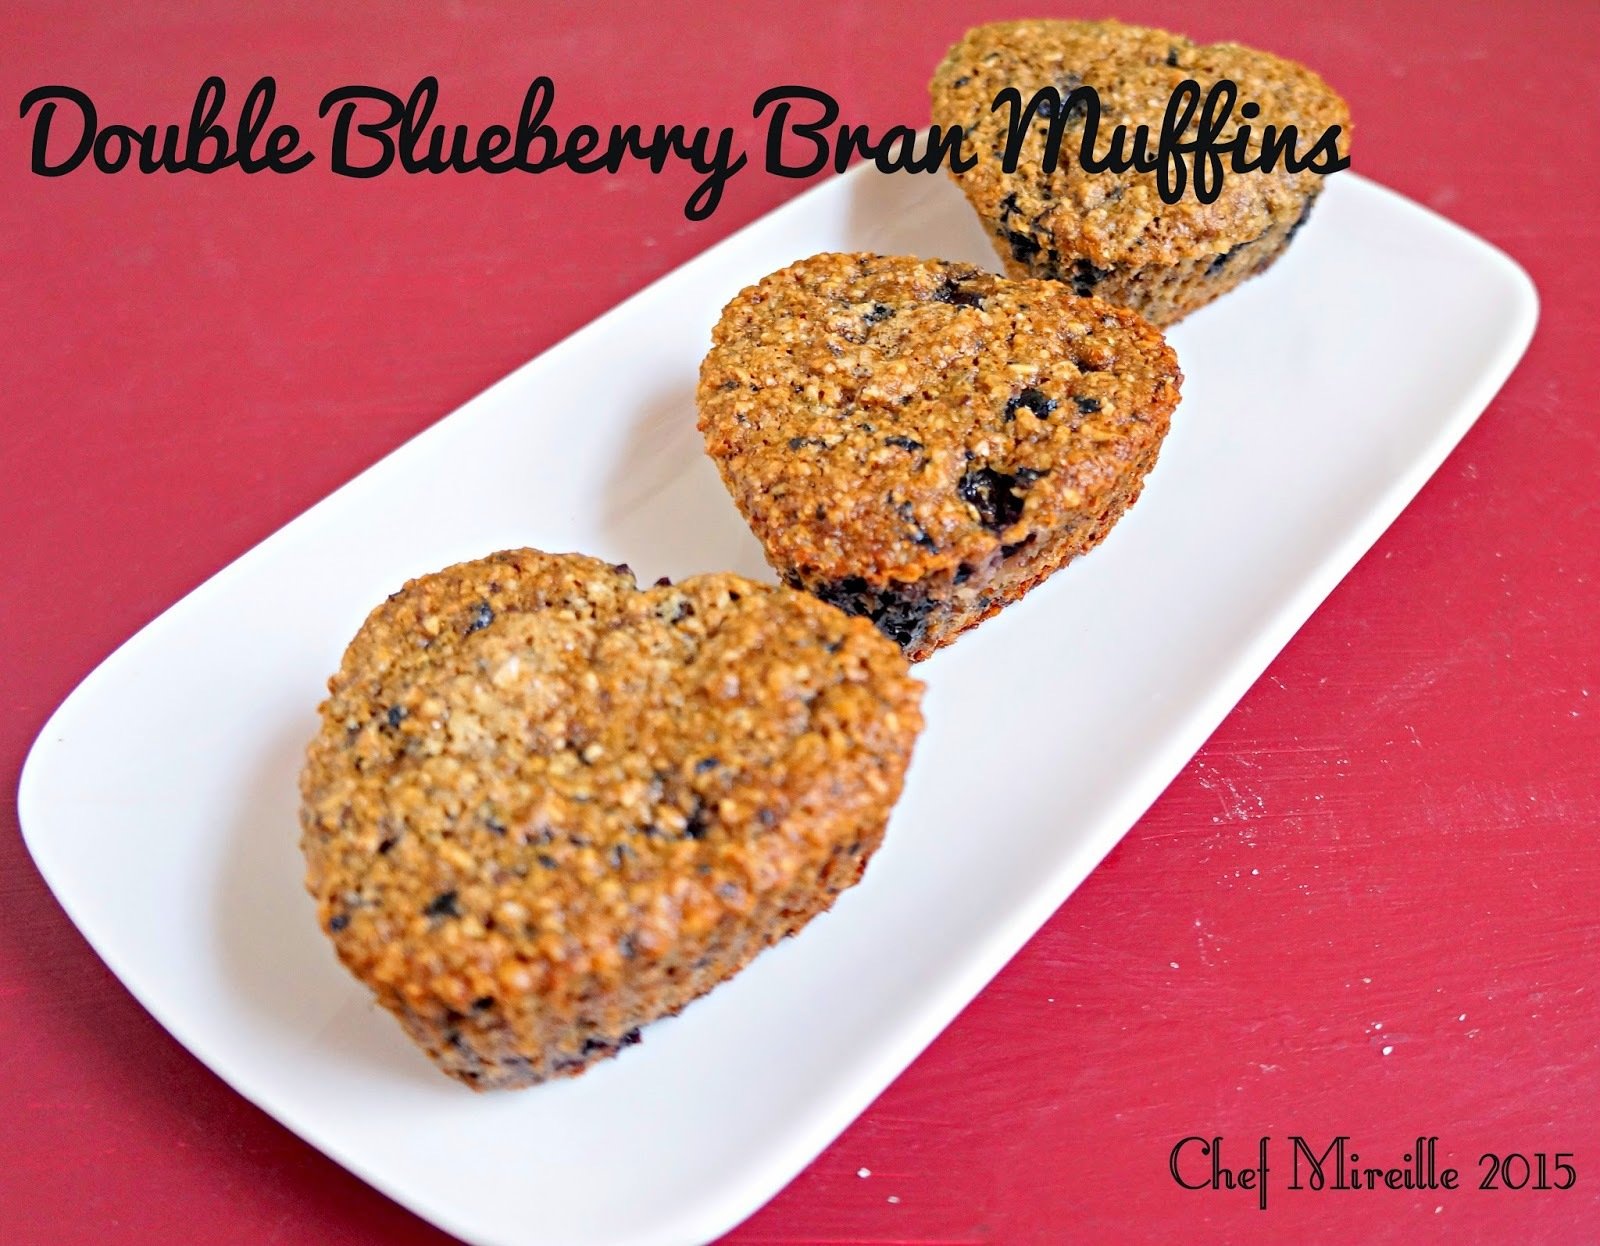 Double Blueberry Bran Muffins